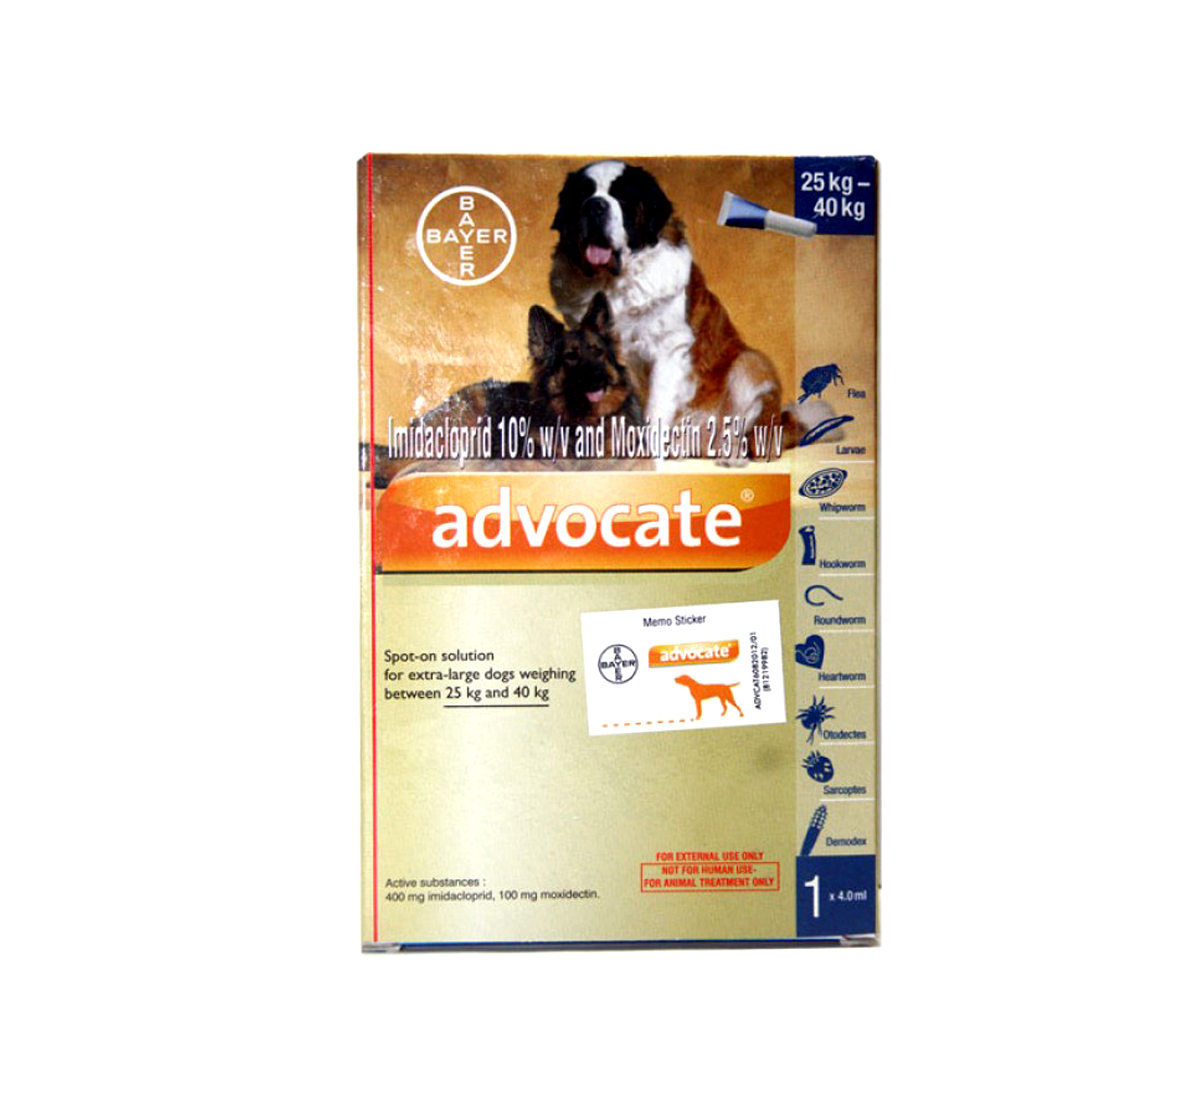 Bayer Advocate For External Parasites For XLarge Dogs - 25 to 40 kg